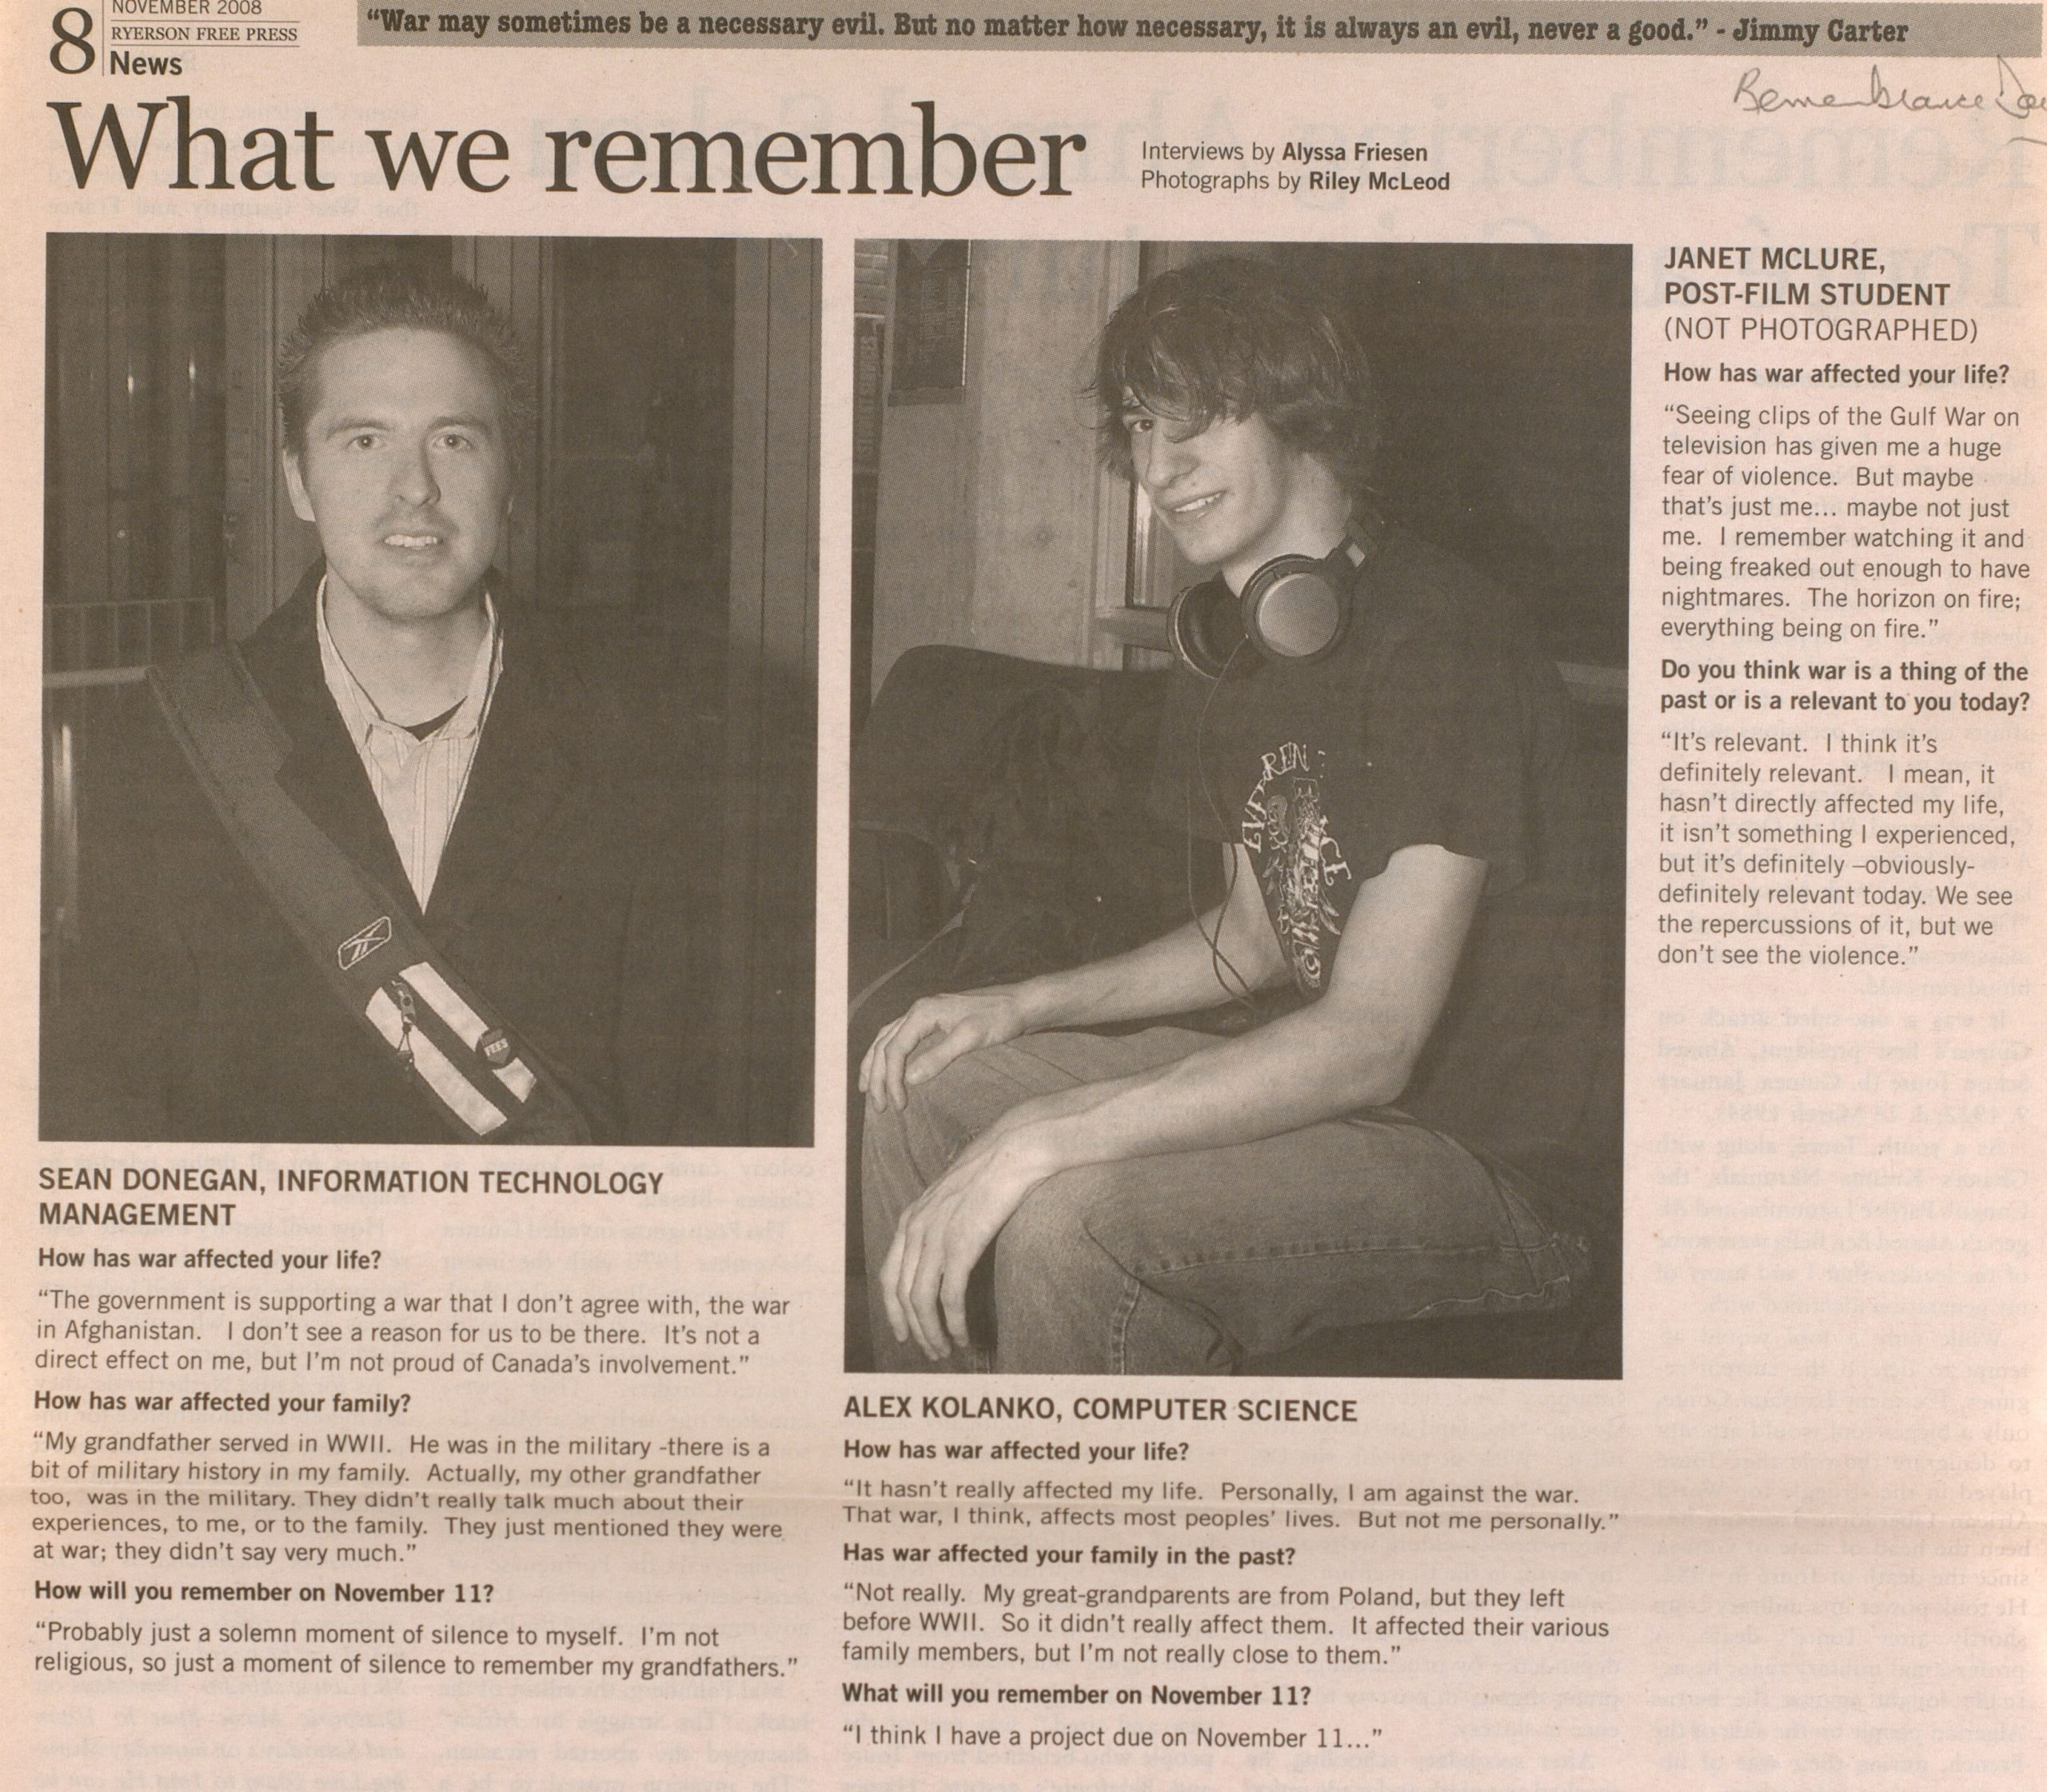 """A newspaper article titled """"What we remember"""" interviewing students perspectives"""